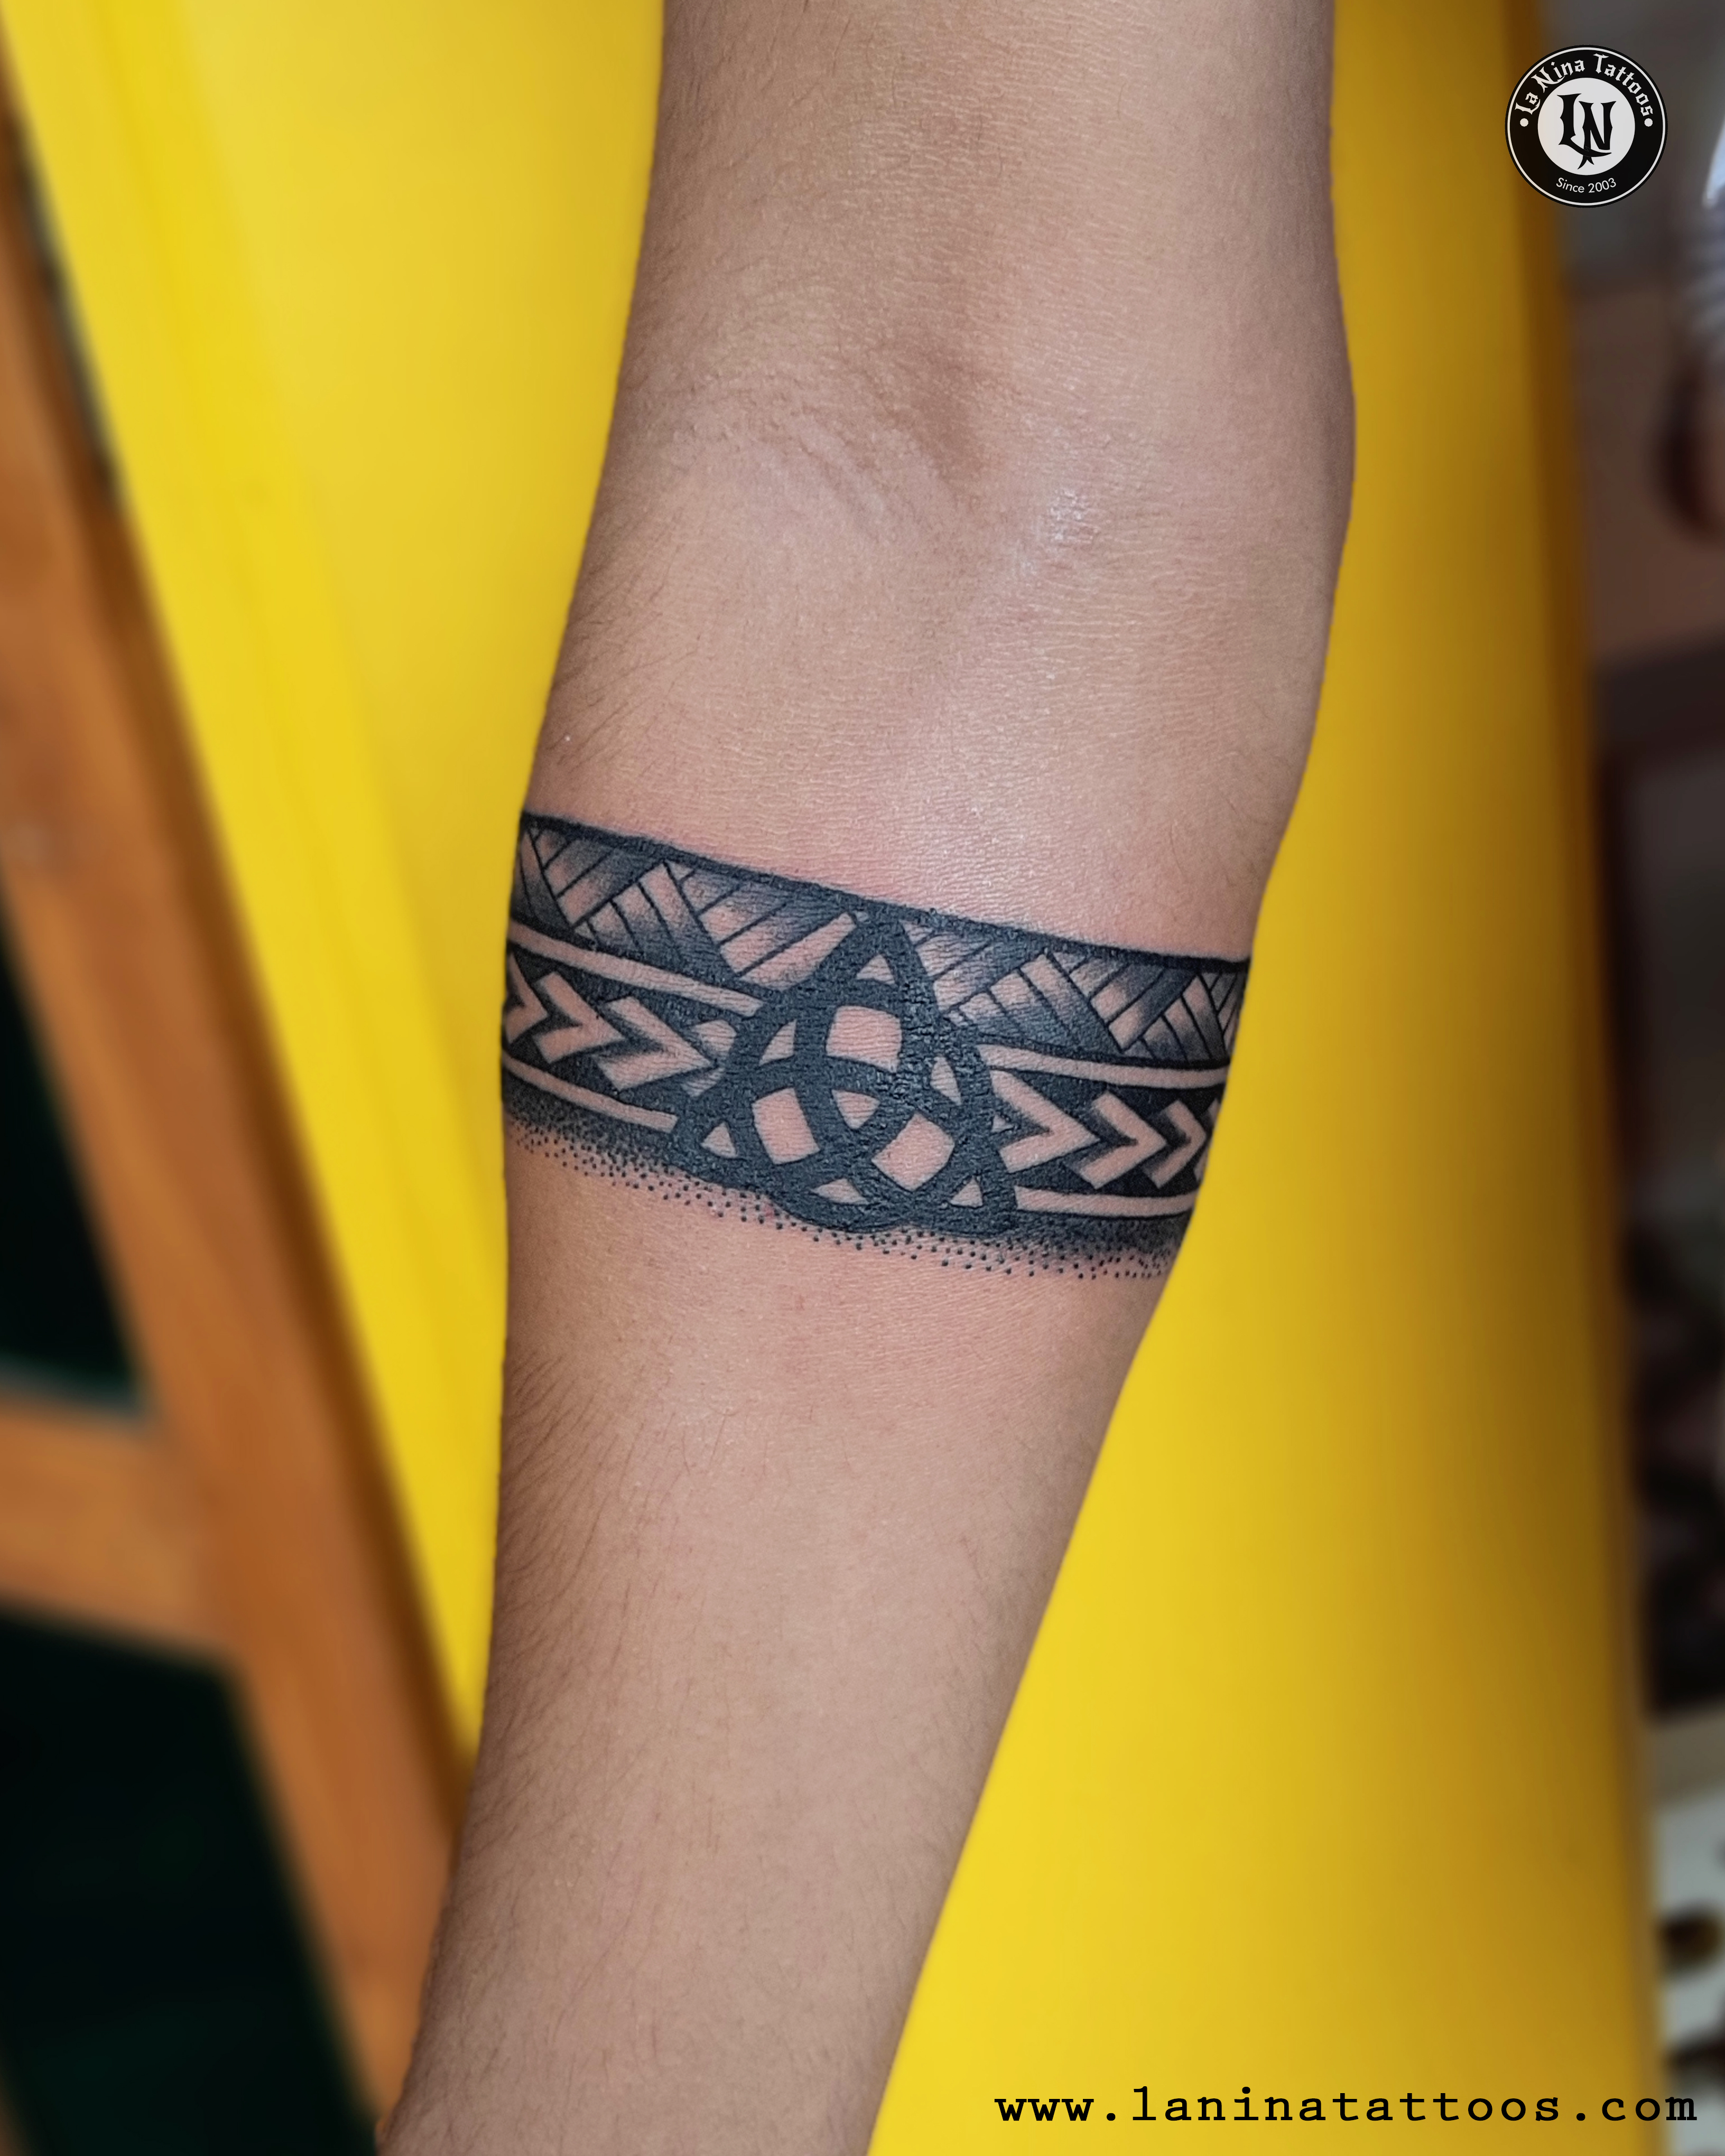 tattoo-ahmedabad-gujarat-india-laninatat